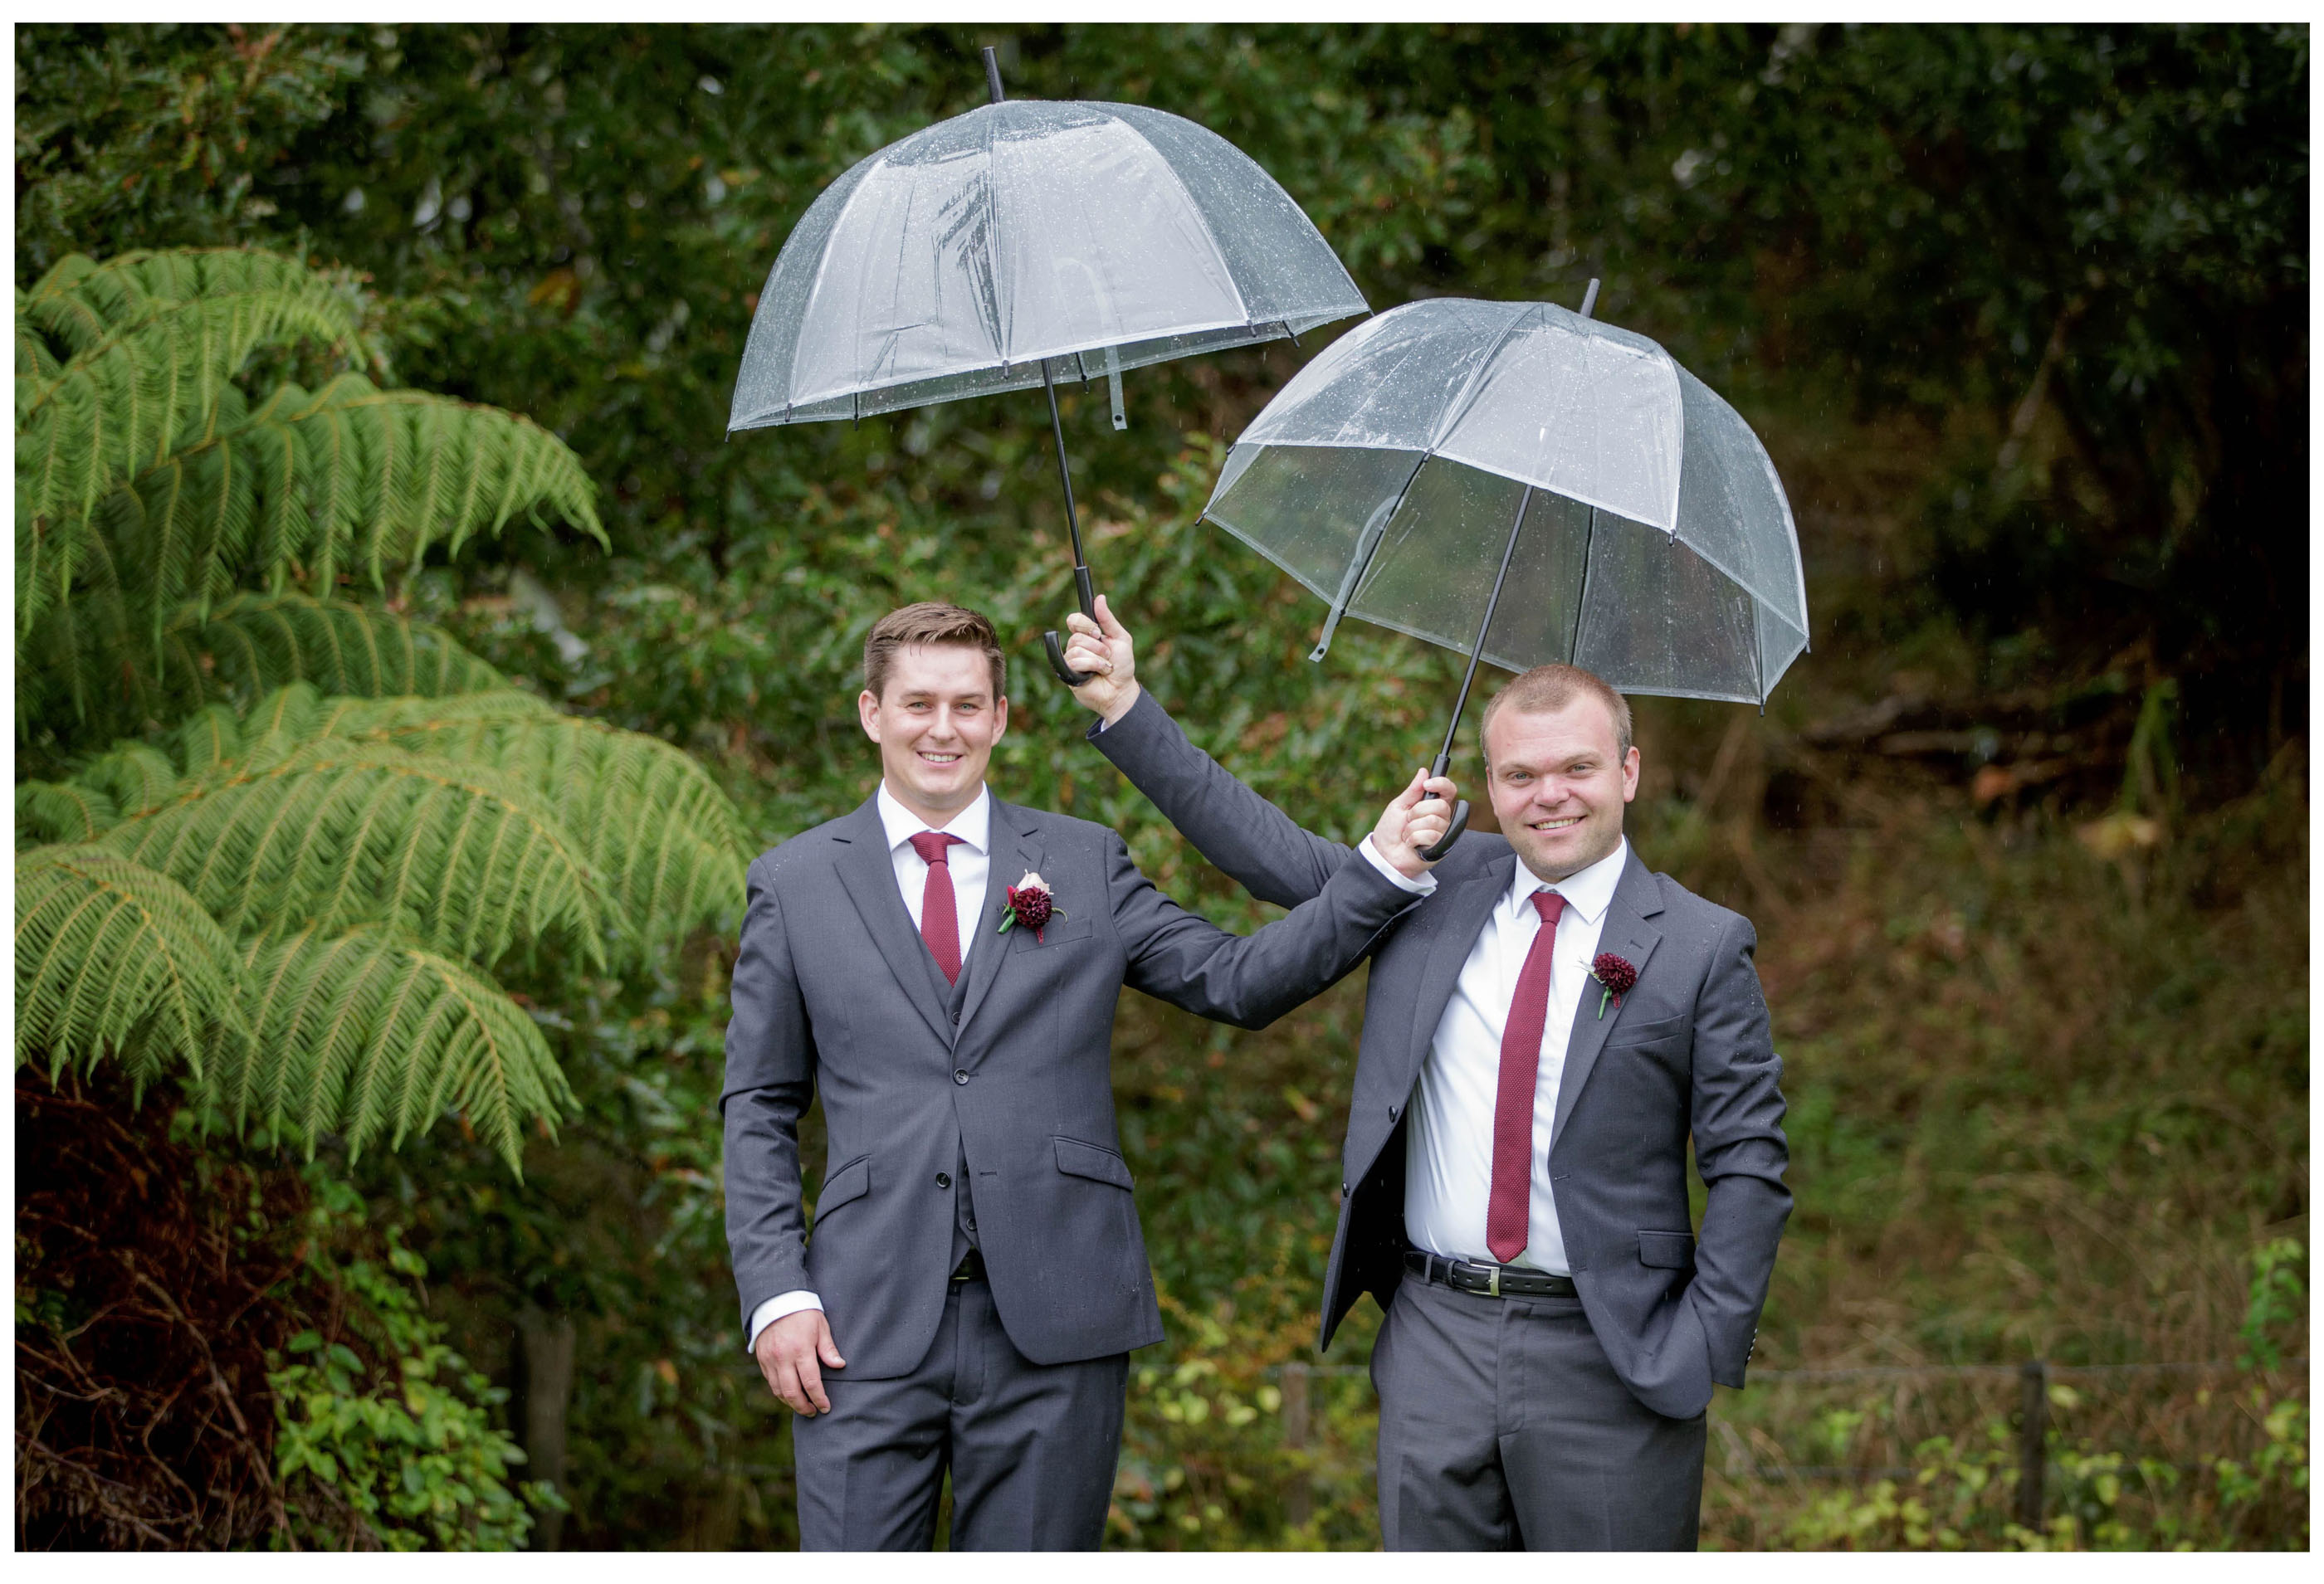 Broom and best man hold umbrellas up above their heads on rainy wedding day.